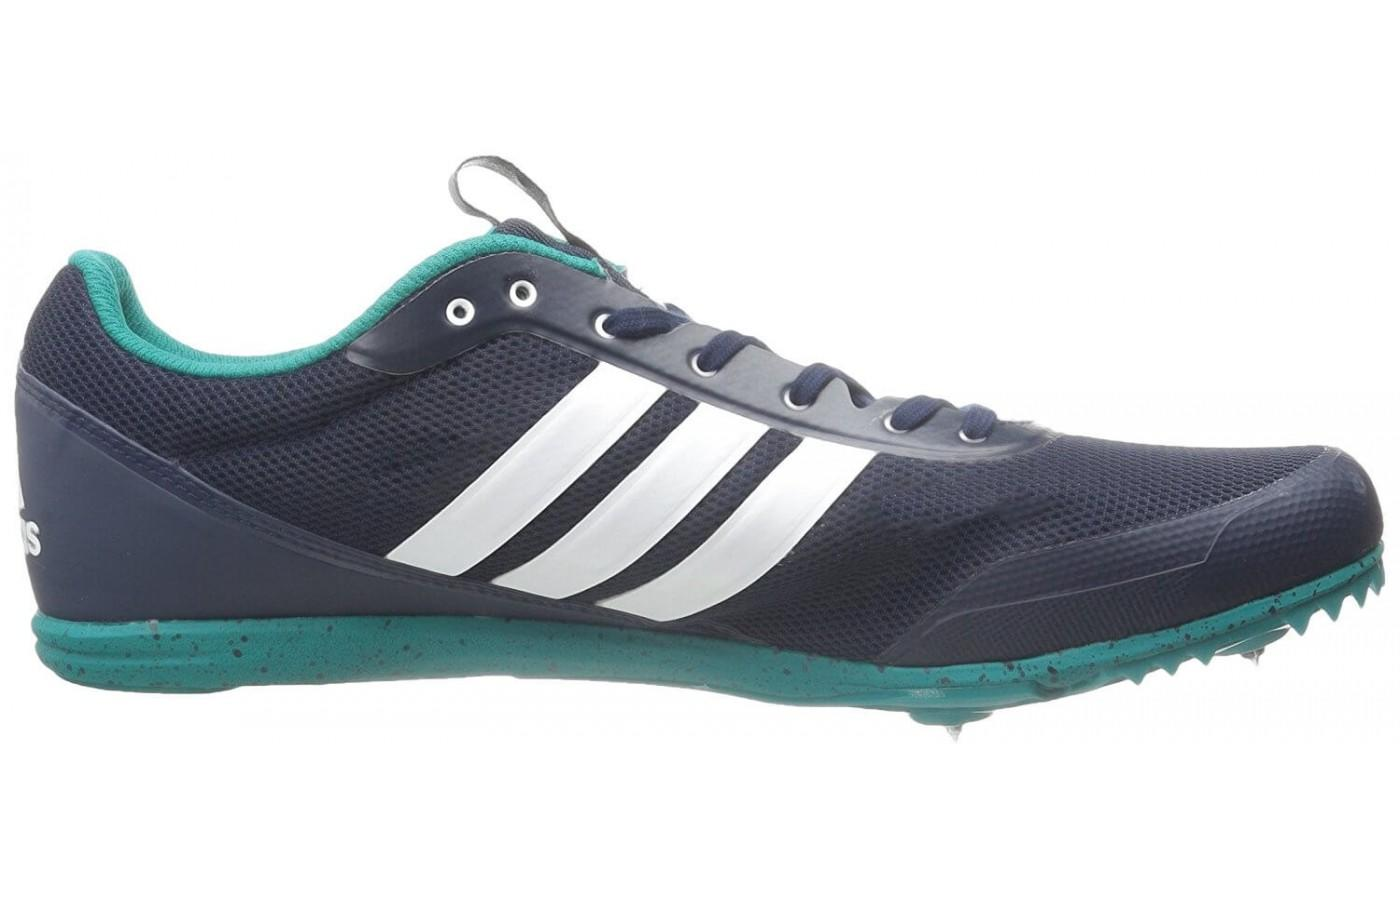 huge selection of 34eb1 c7f1c ... The classic Adidas insignia decorates this shoe ...